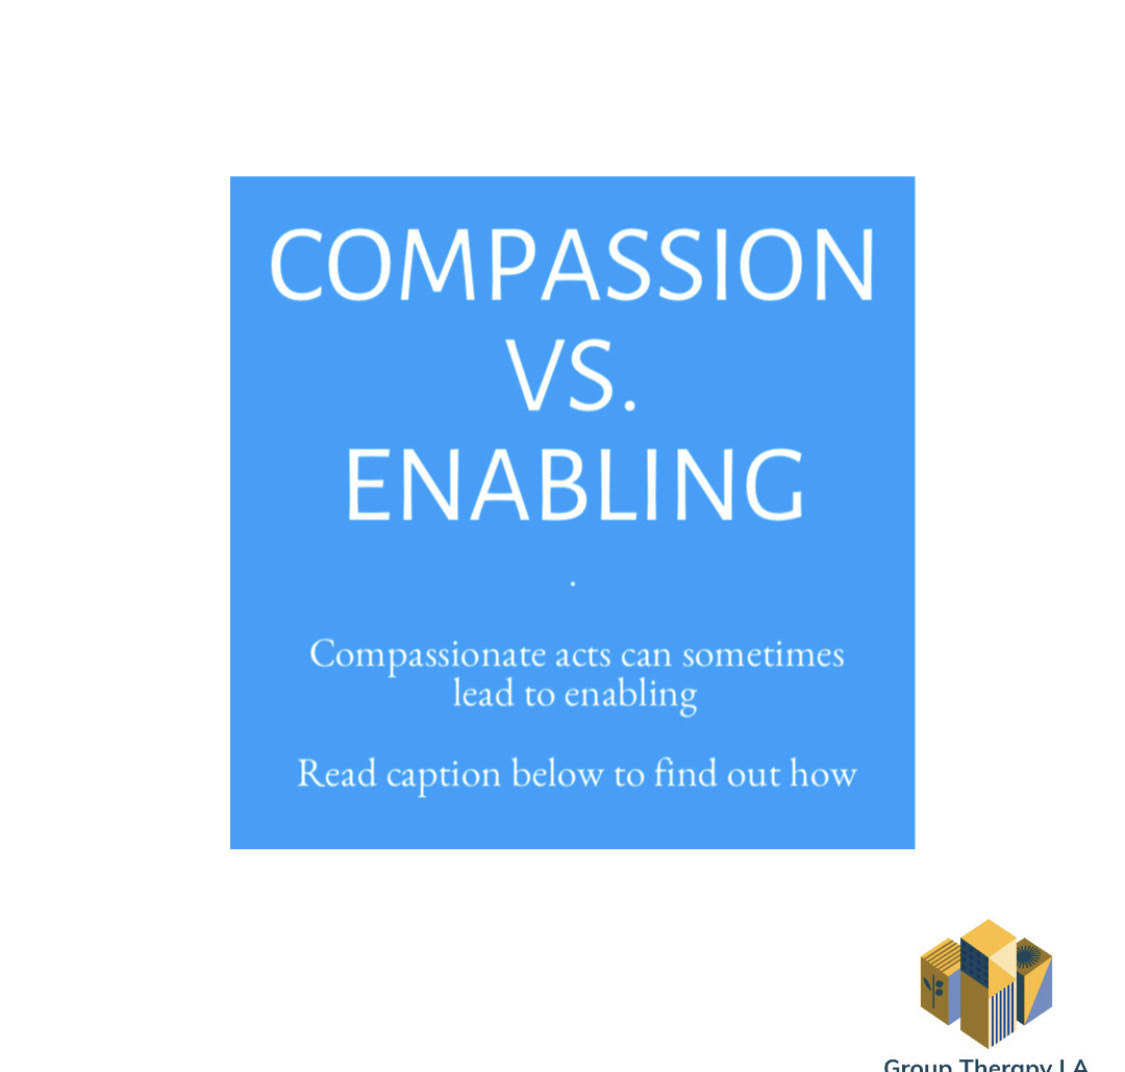 Compassion vs. Enabling